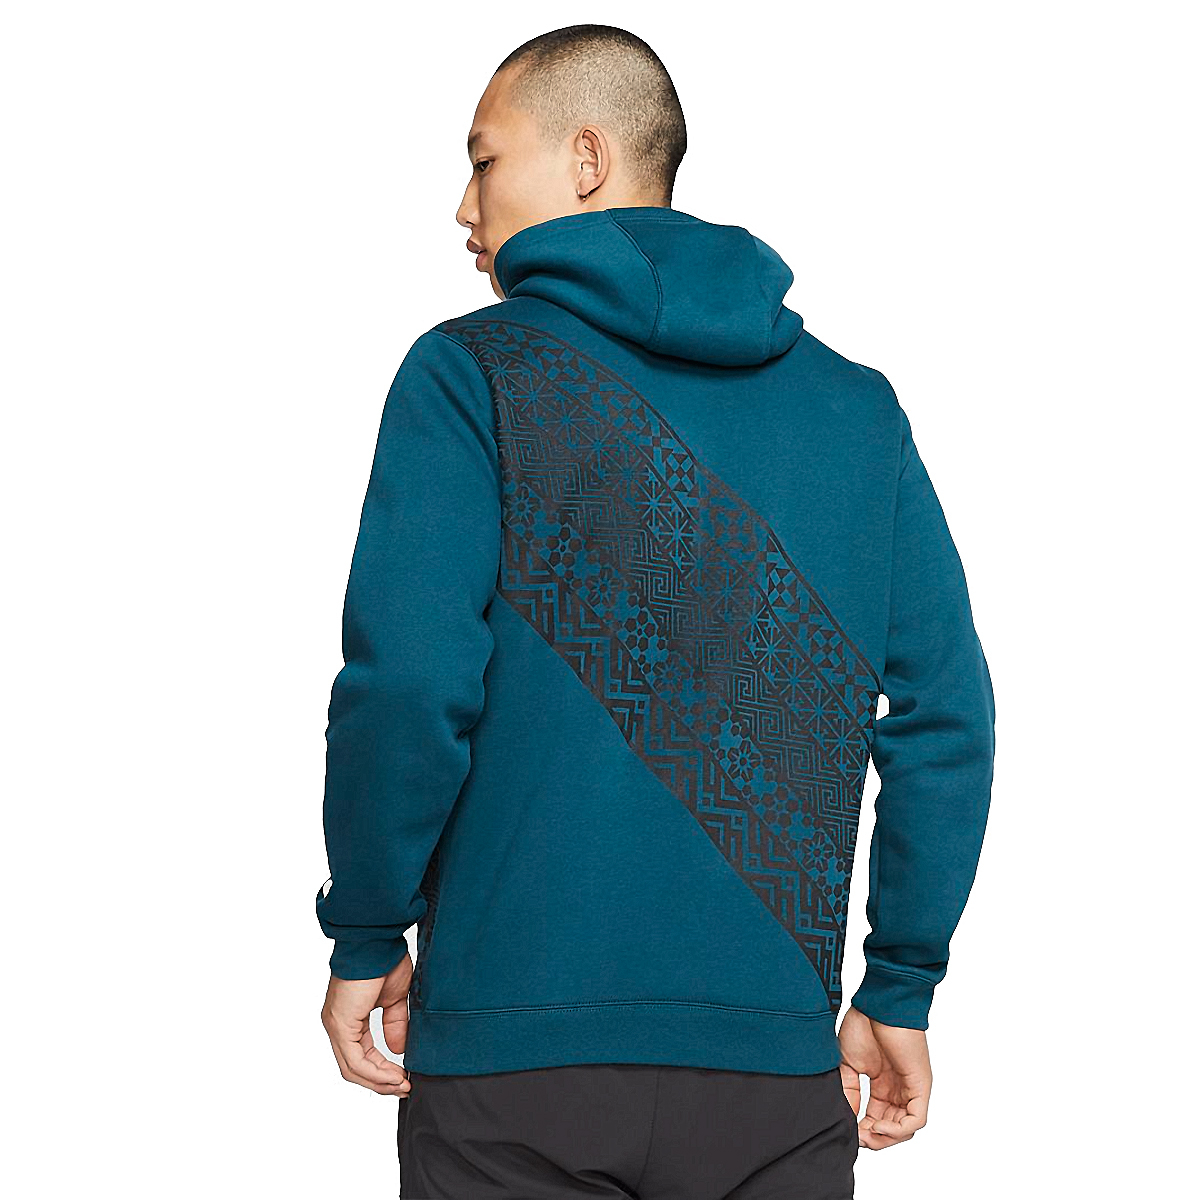 Men's Nike Club Pullover Hoodie  - Color: Midnight Turquoise - Size: XS, Midnight Turquoise, large, image 2